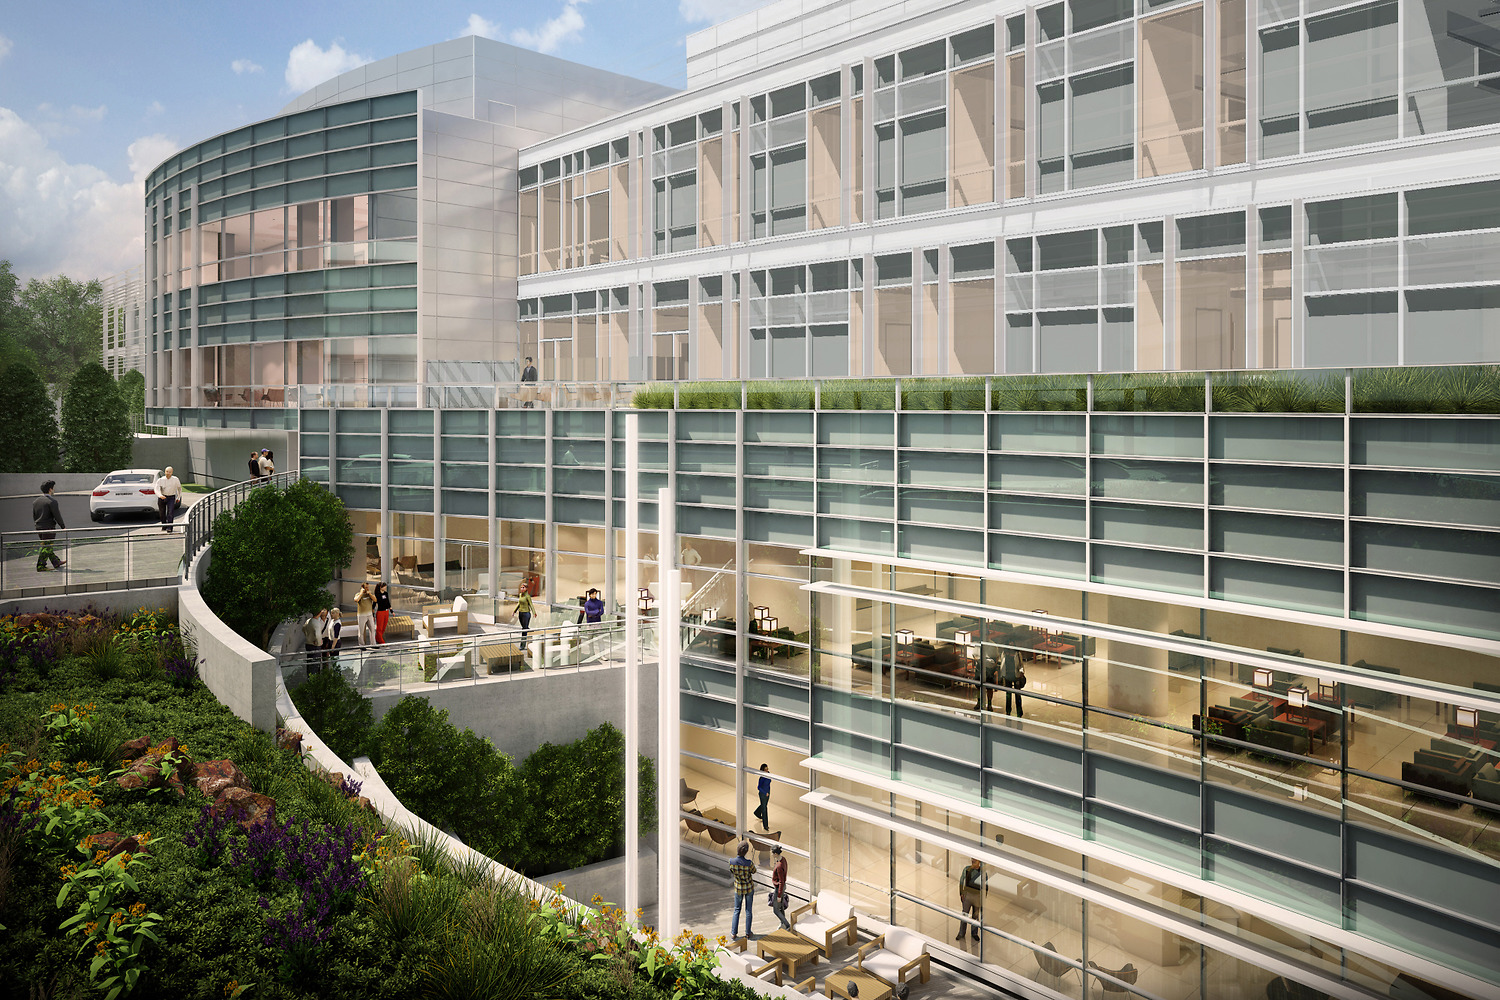 Marin General Hospital - This project comprised a new 294,000 sq ft Acute Care building, a 80,000 sq ft Ambulatory Service building, and a parking garage.Owner: Marin Healthcare DistrictArchitect: Perkins EastmanGC: McCarthyOur Scope: Acoustical ceiling model